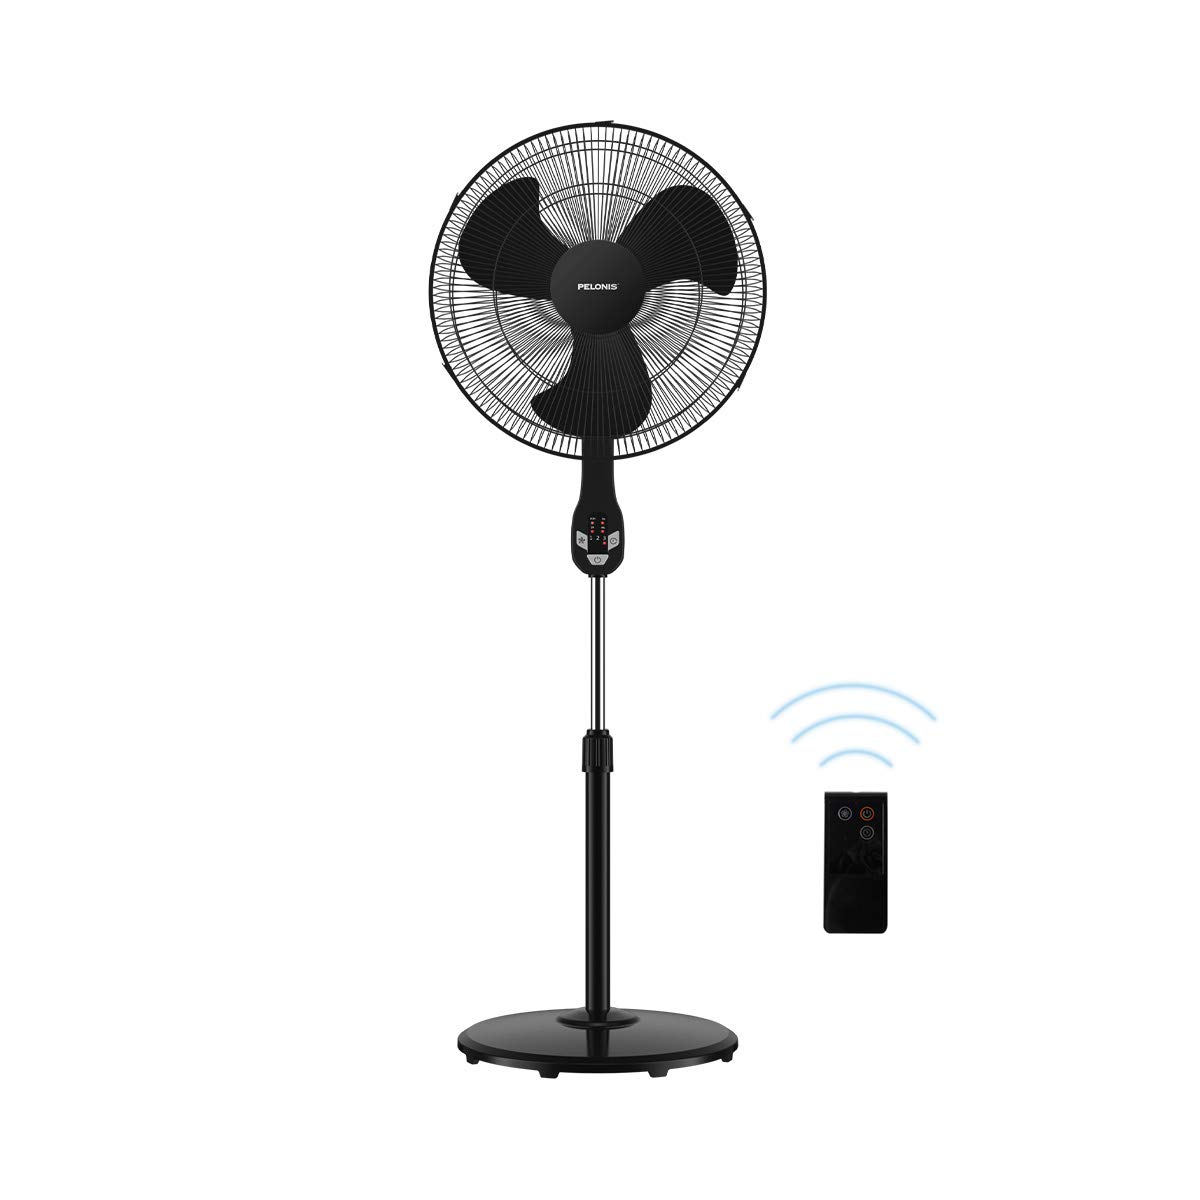 PELONIS FS45-18UR 18'' Quiet Oscillating Pedestal Fan with LED Display, Remote Control, 3 Speeds and Modes, 7h Programmed Timer for Home and Office, Glossy Black, 18 Inch 2019 New Model